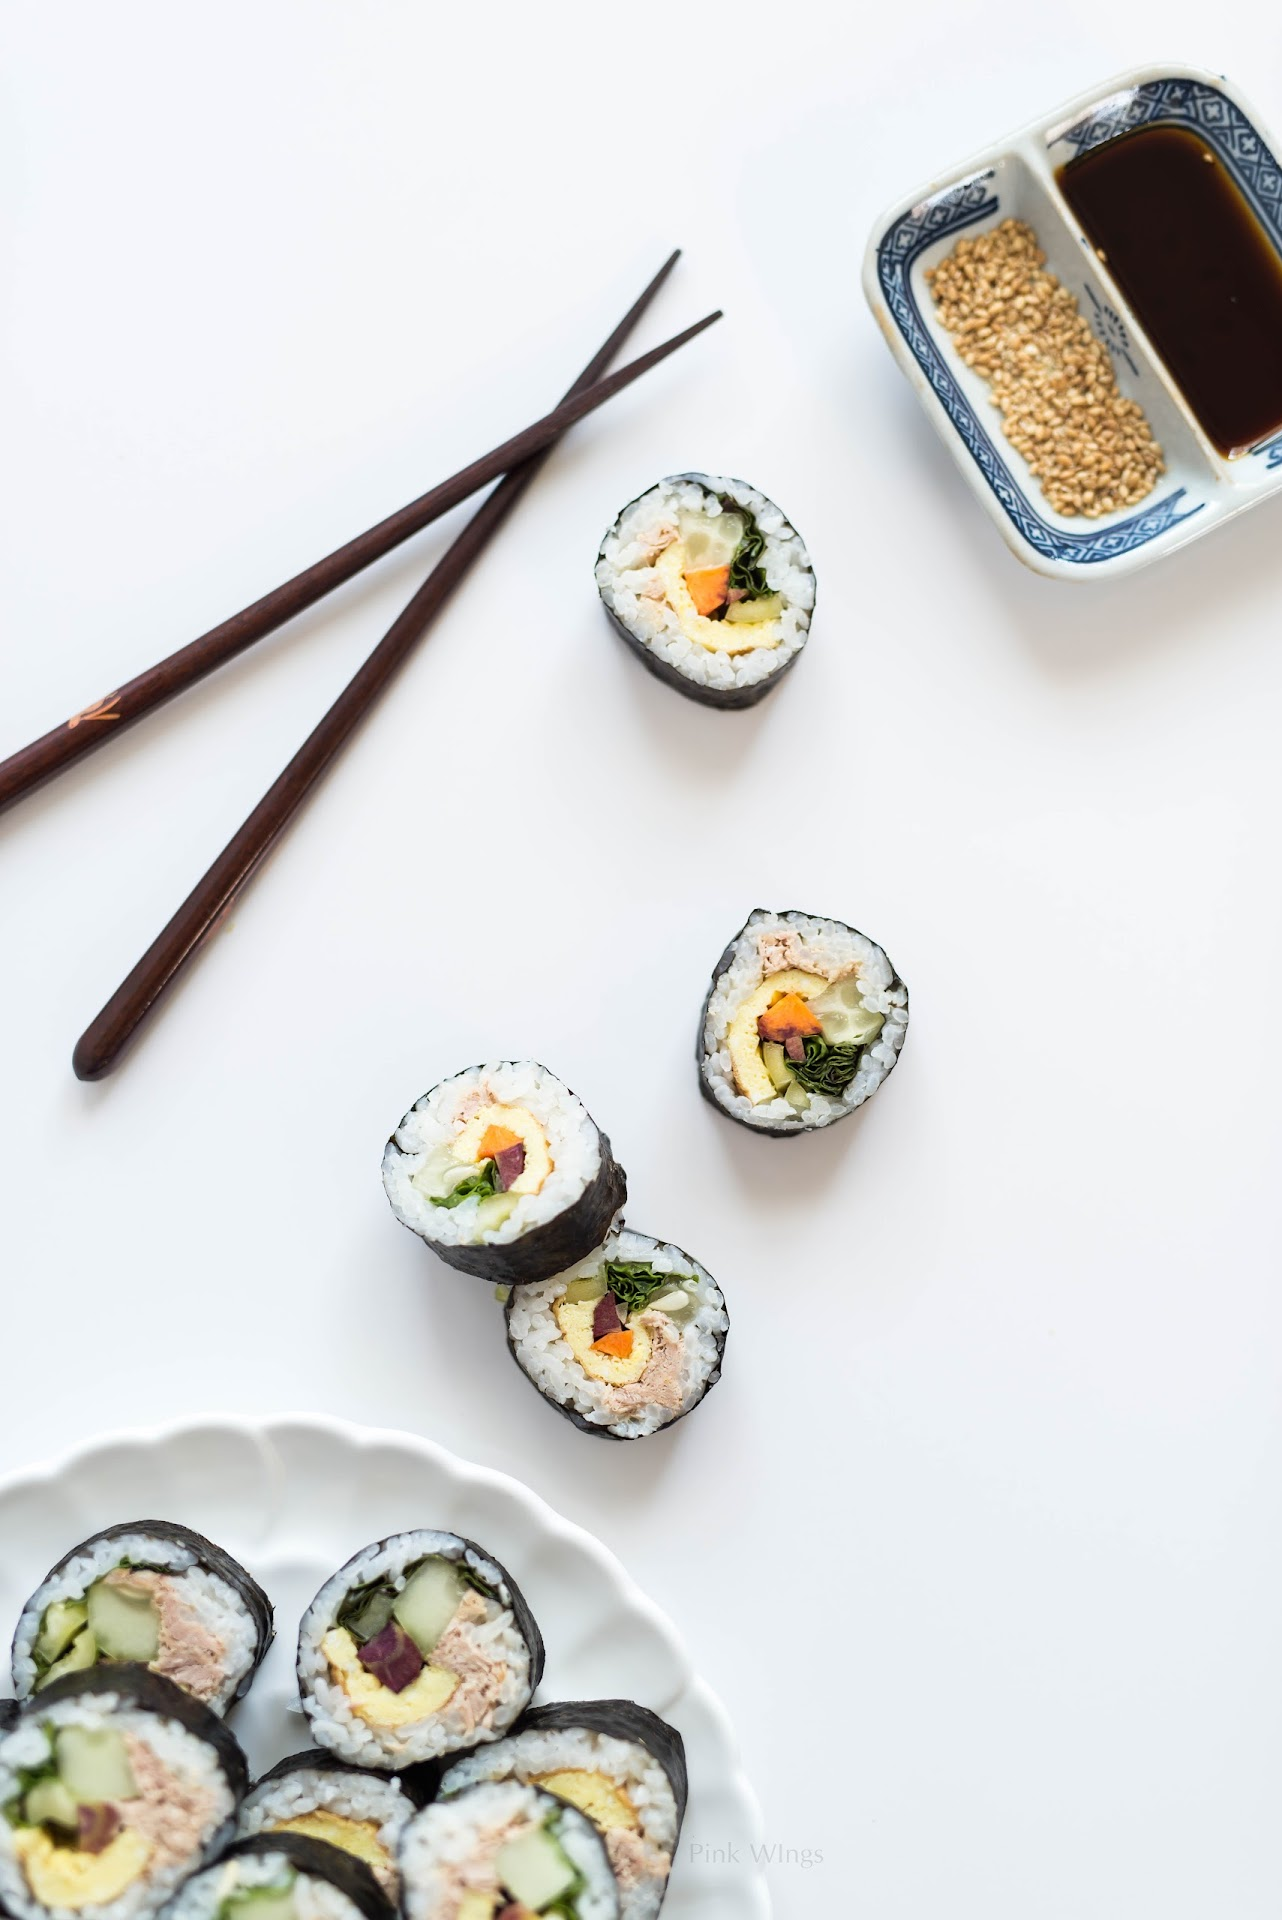 kimbap recipe, korean food blog, korean blogger, lds, mormon, asian, asian food, sushi, healthy snack, nutritious, farm fresh to you review